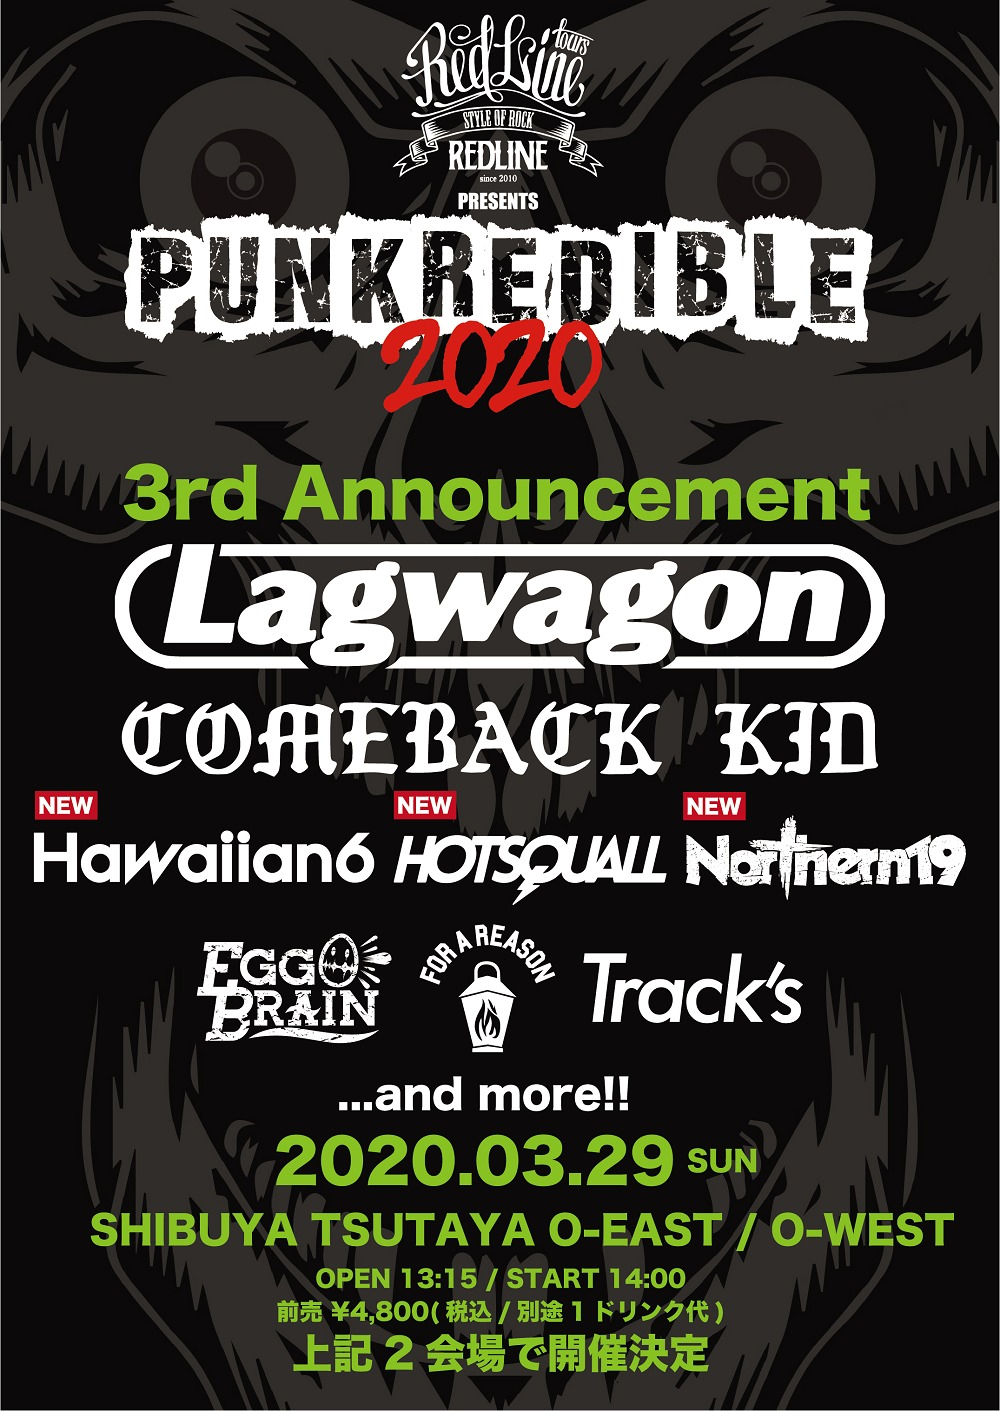 REDLINE presents PUNKREDIBLE 2020